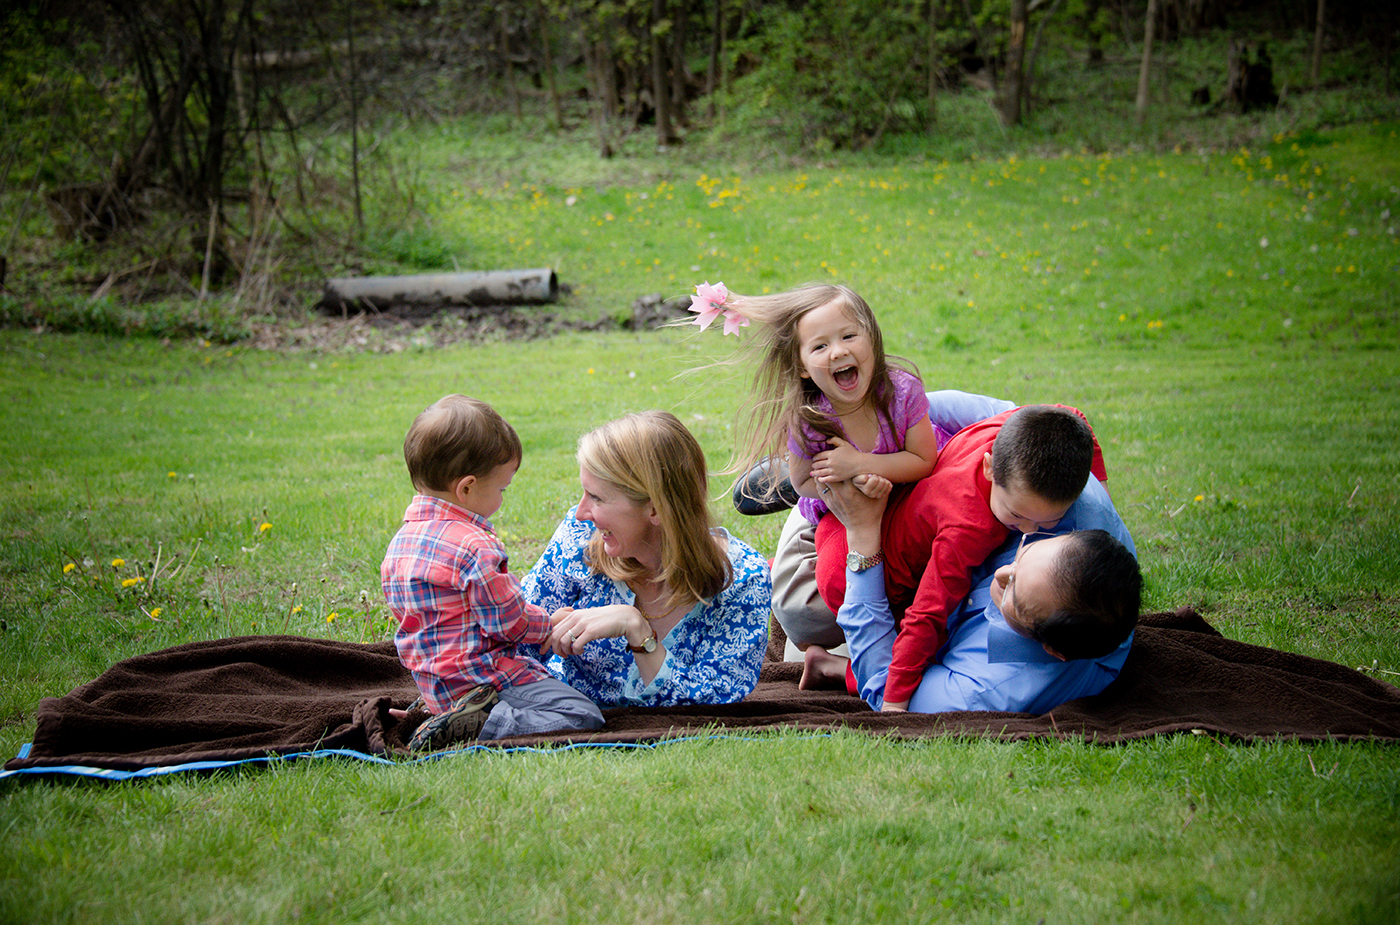 All Occasions Photography Albany NY - Family Photography Example 10